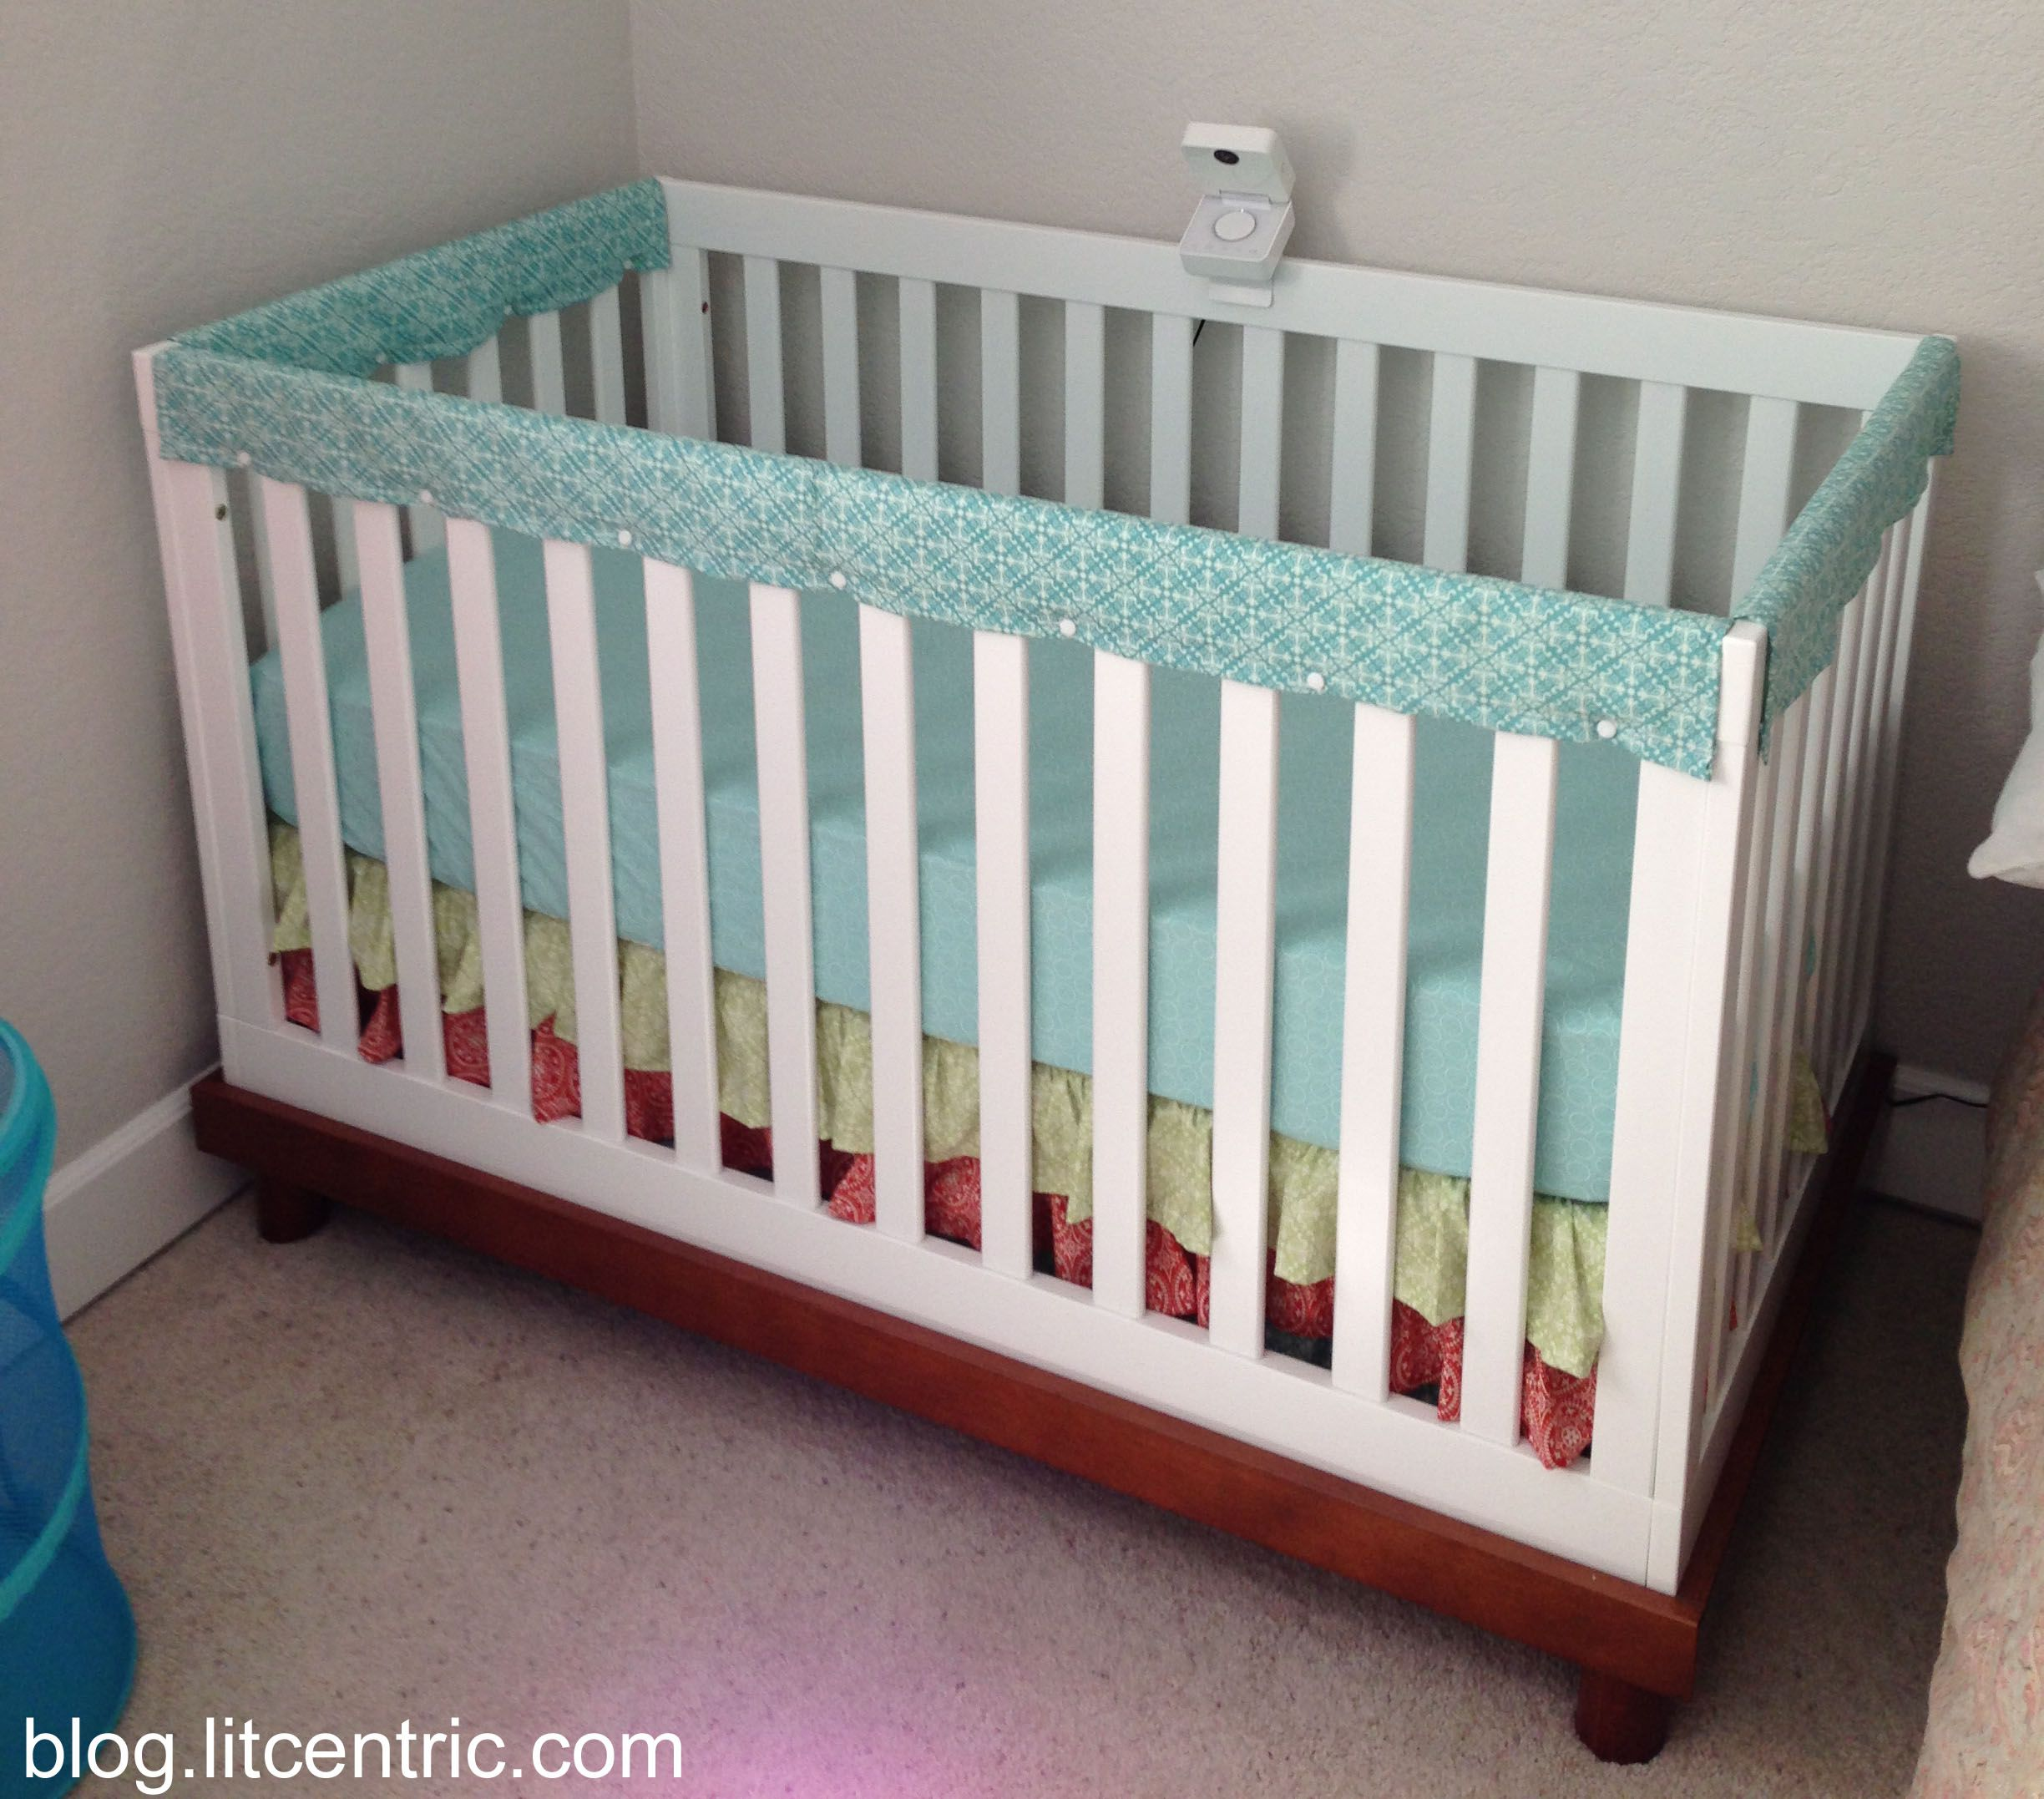 How To Make A Crib Rail Cover With Snap Fasteners